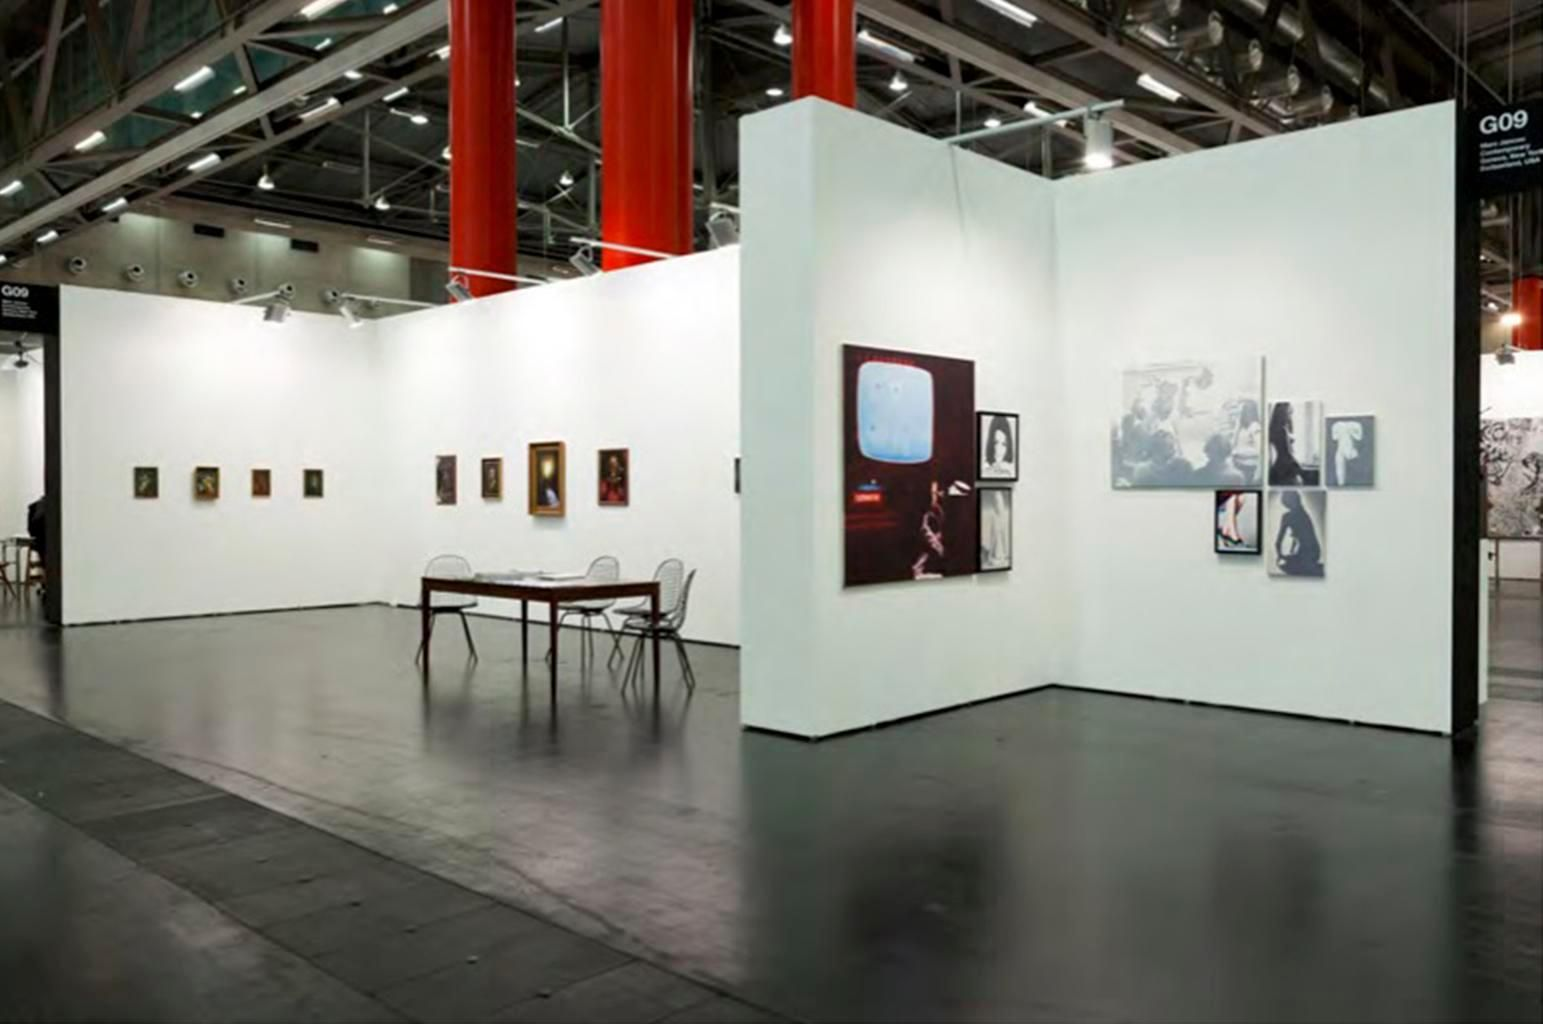 Installation view, Marc Jancou at Viennafair, September 20 - 23, 2013, 	Slawomir Elsner: Panorama